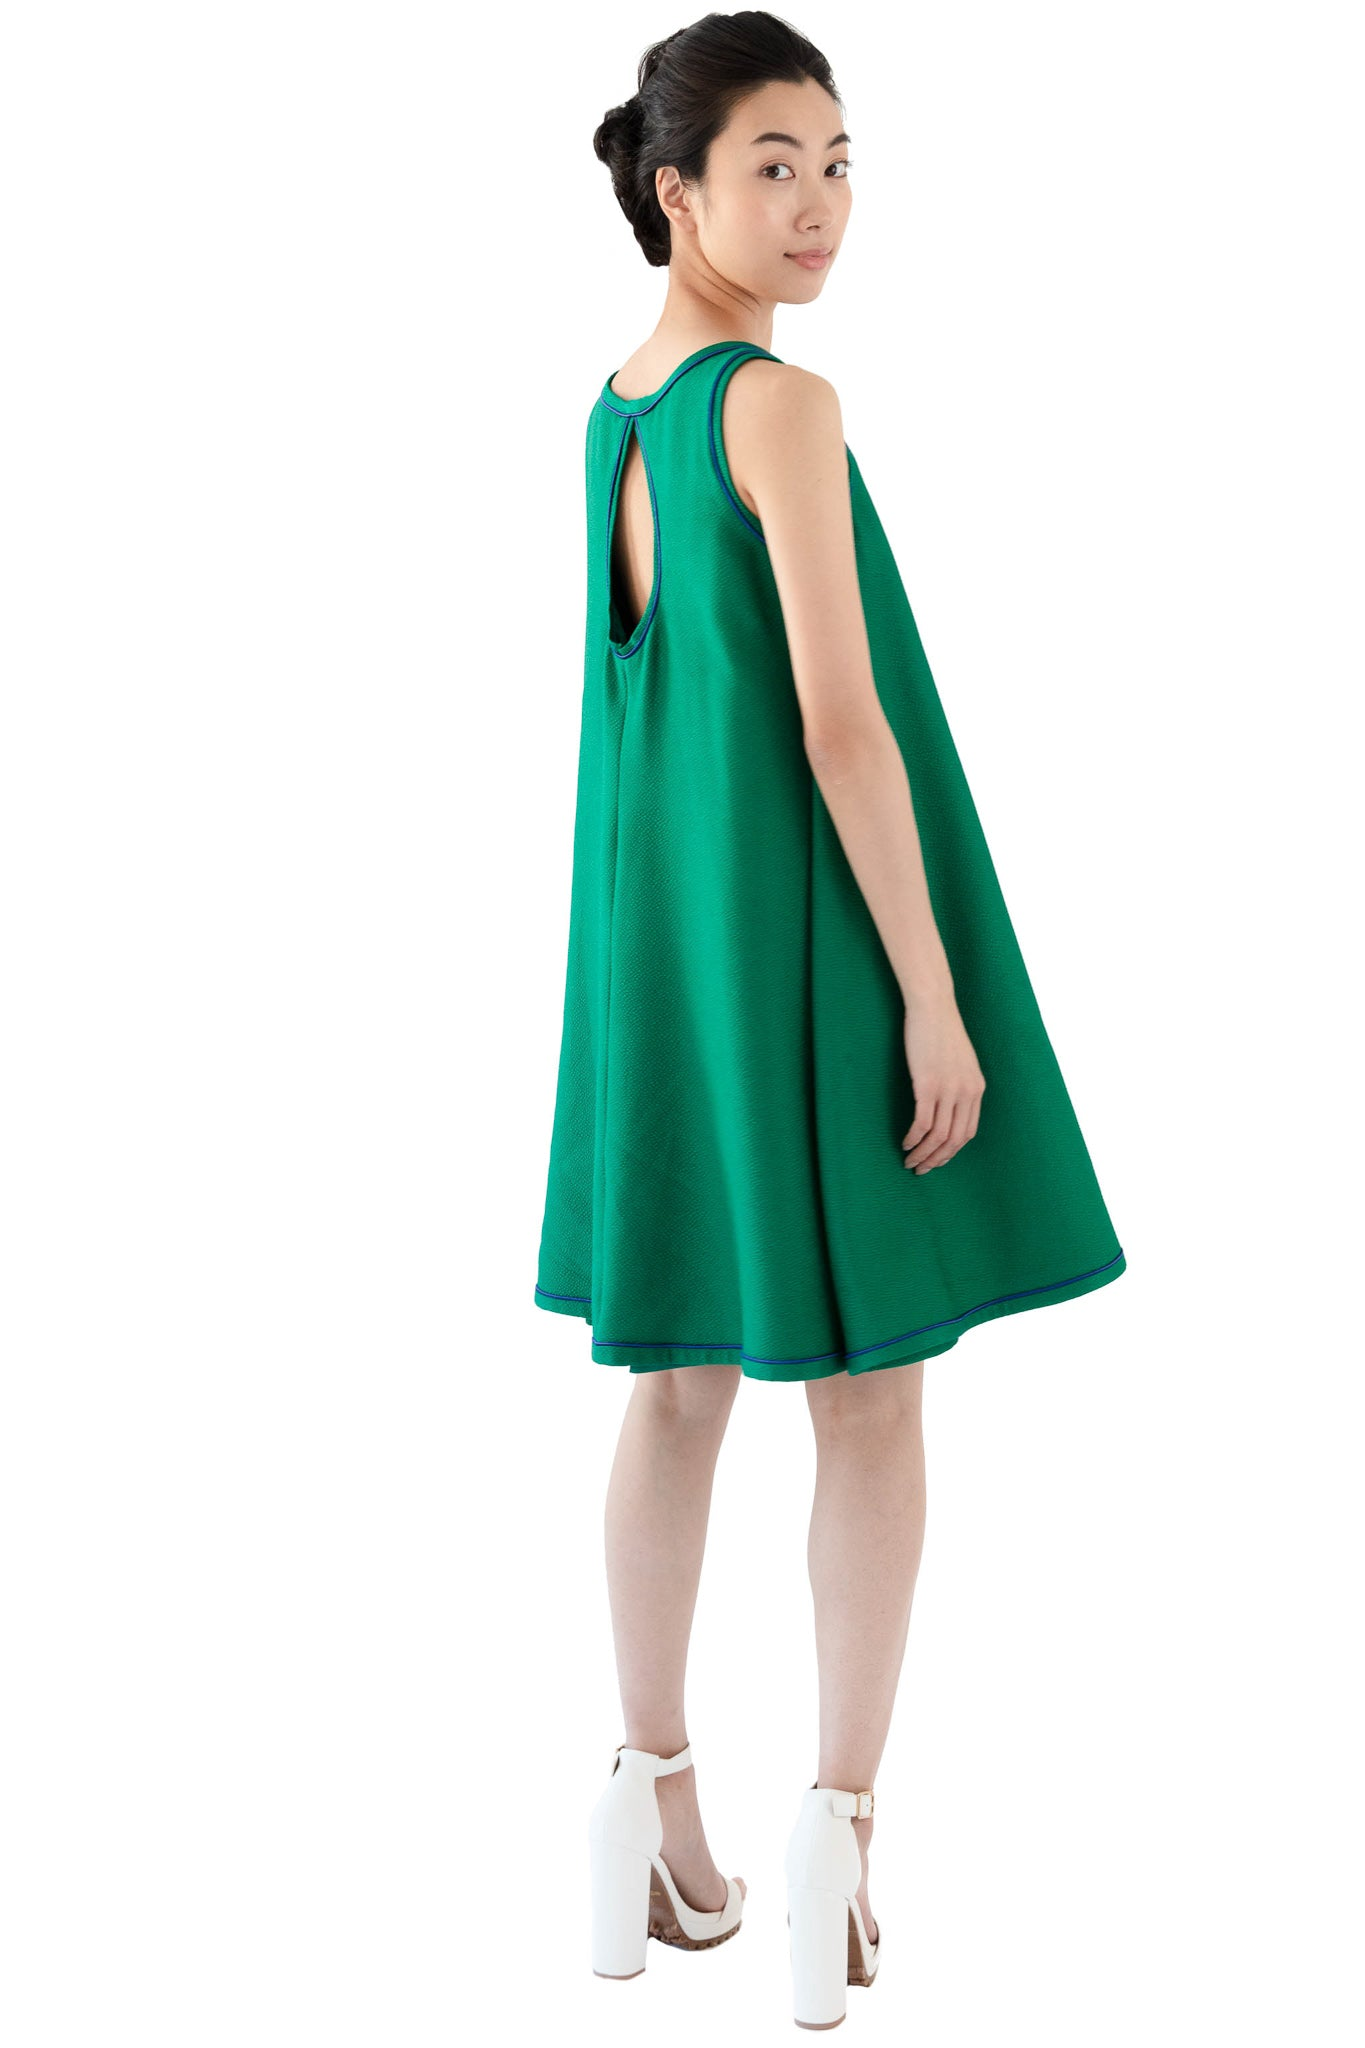 Short women's sleeveless trapeze dress in green